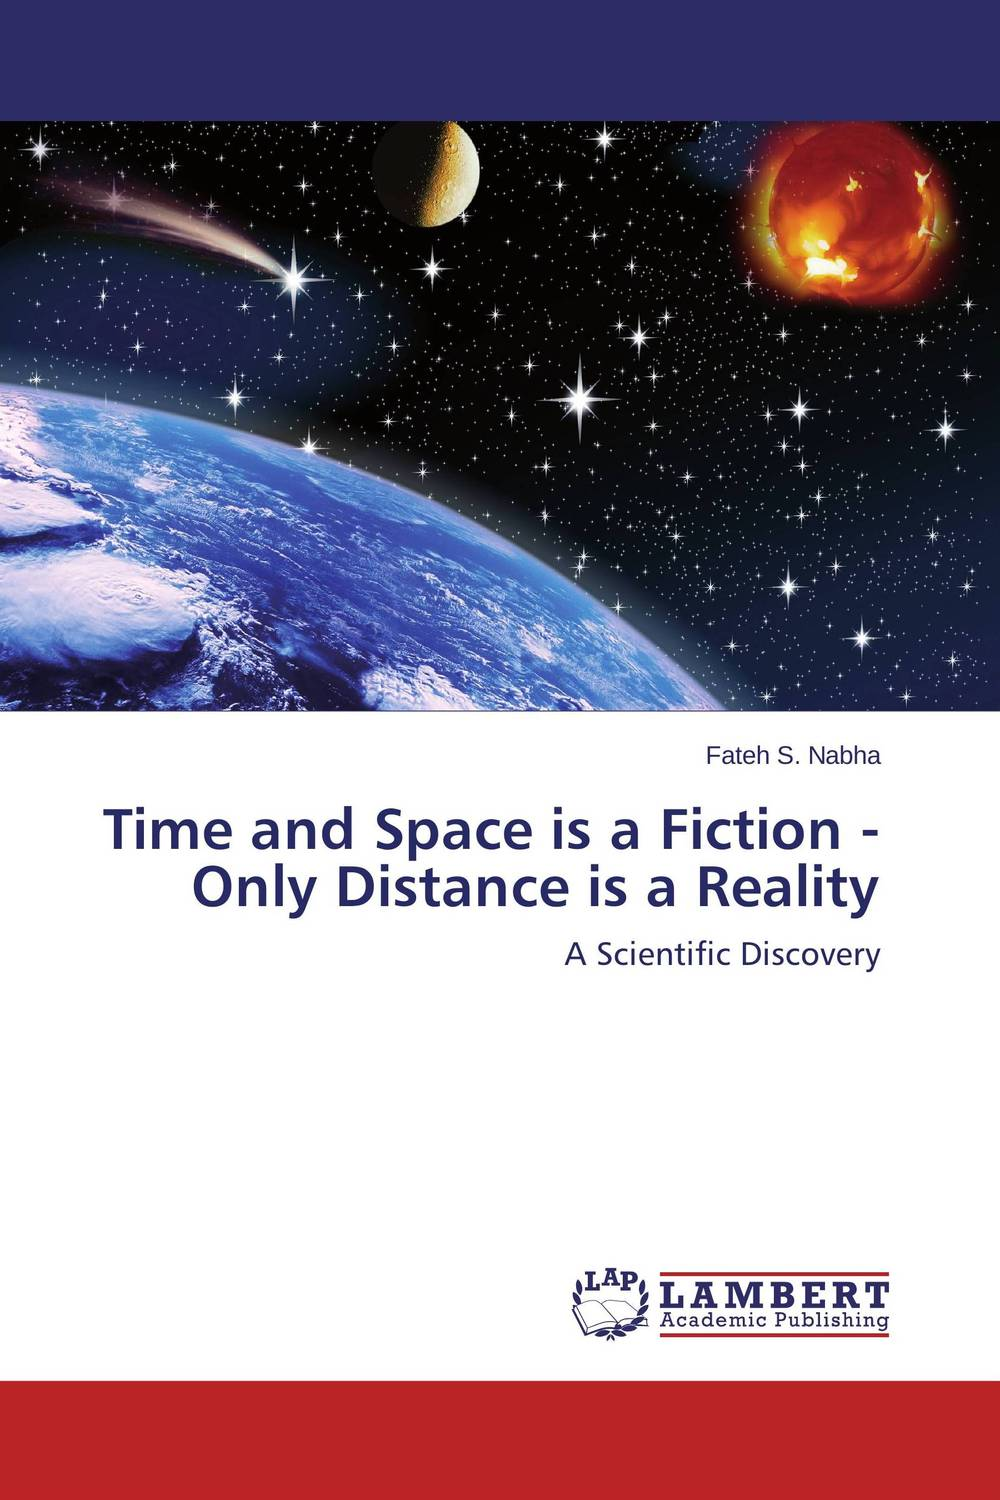 Time and Space is a Fiction - Only Distance is a Reality only a promise